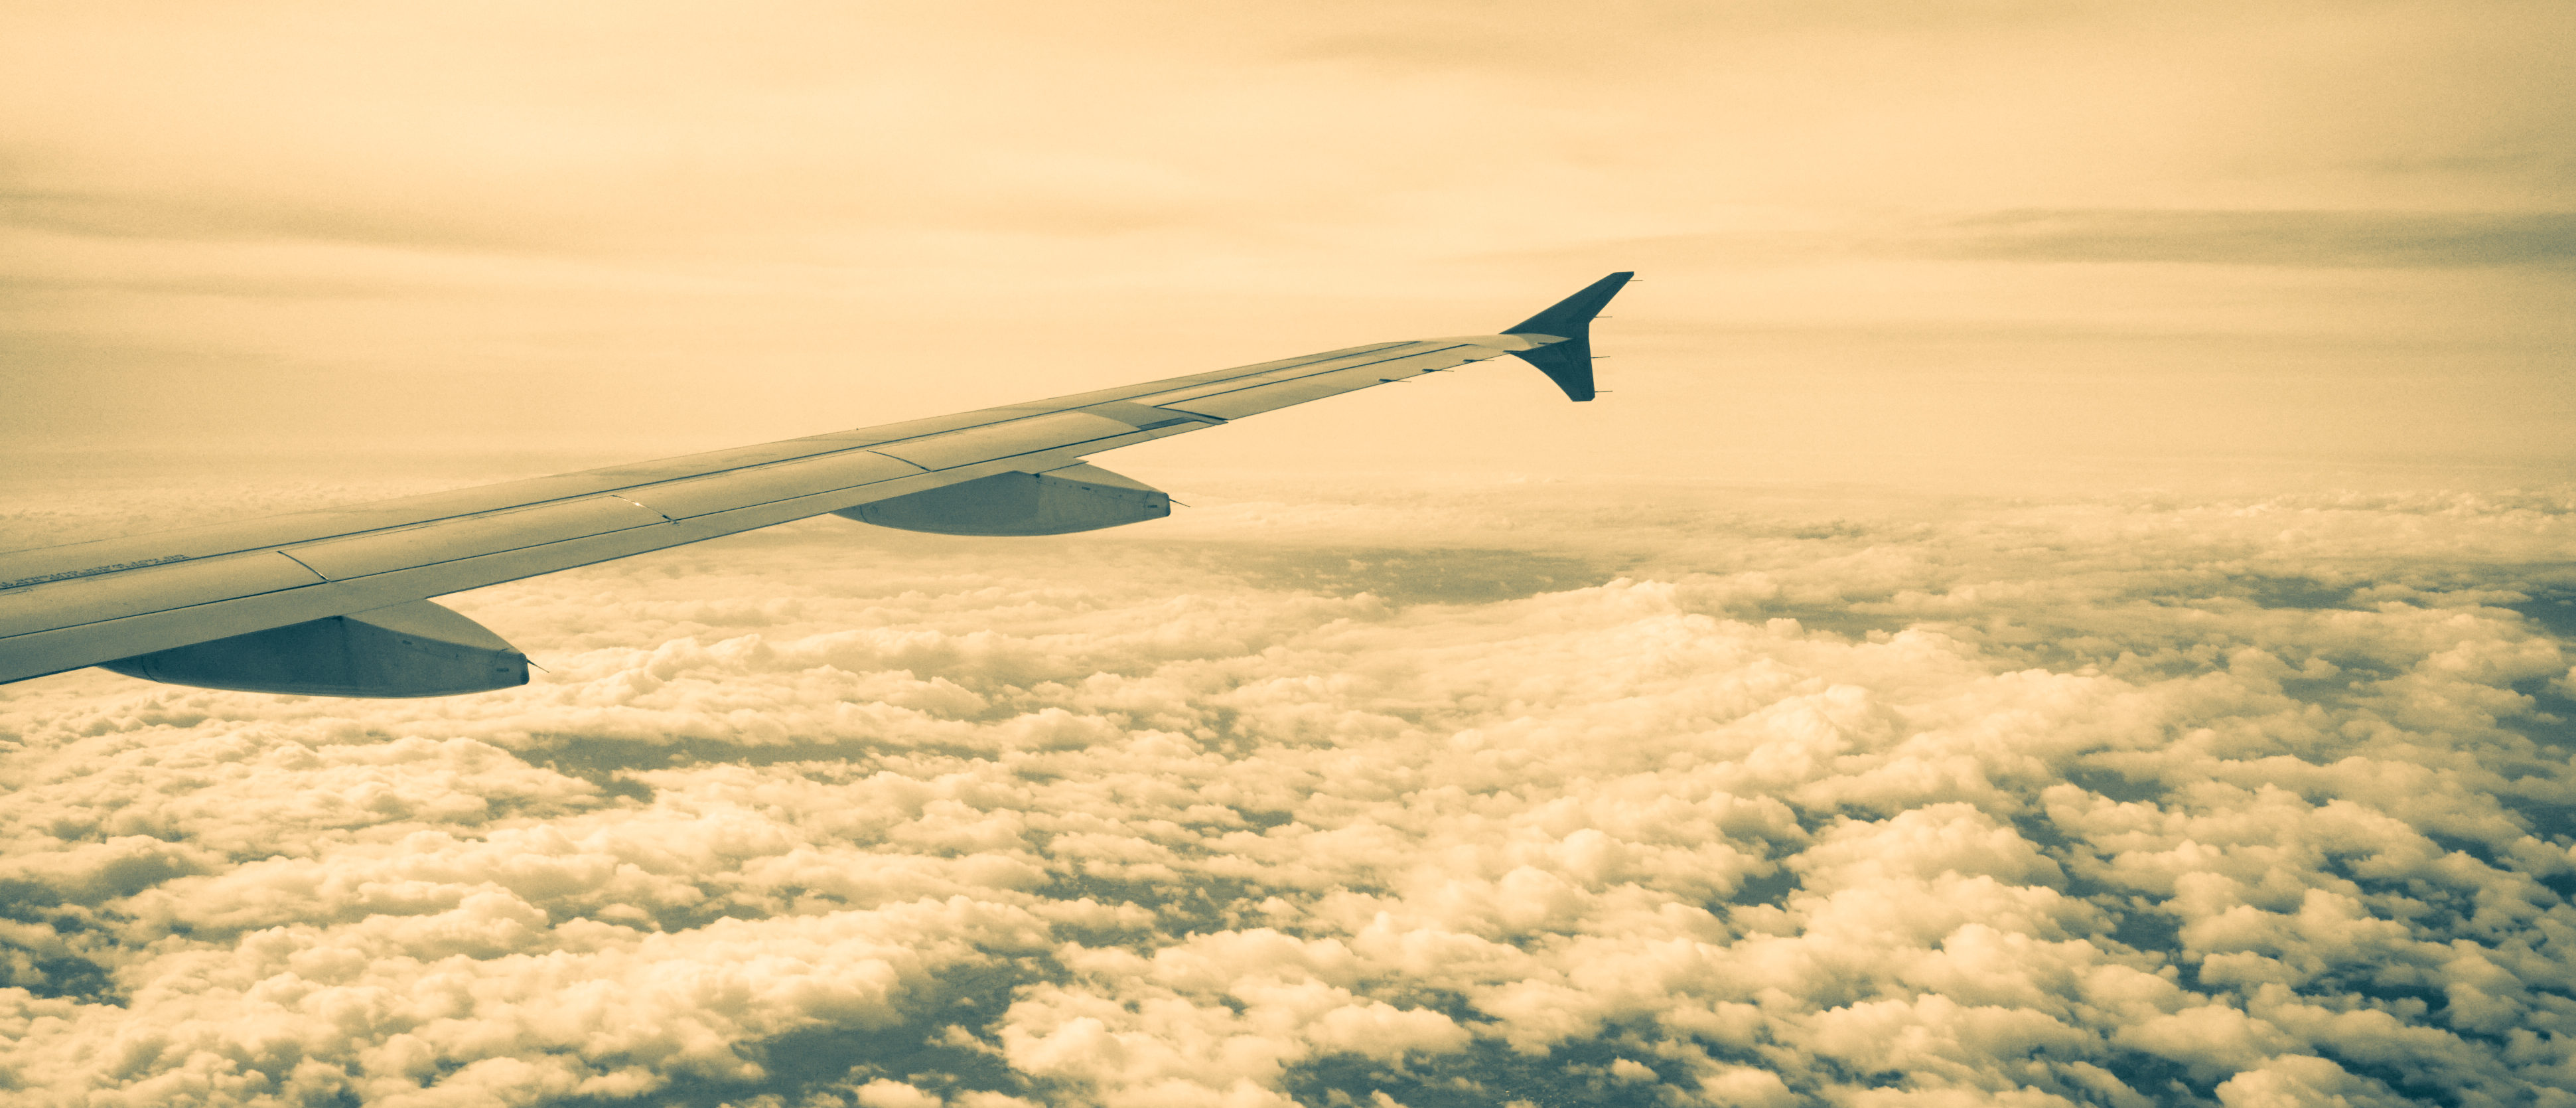 Airplane. Shutterstock